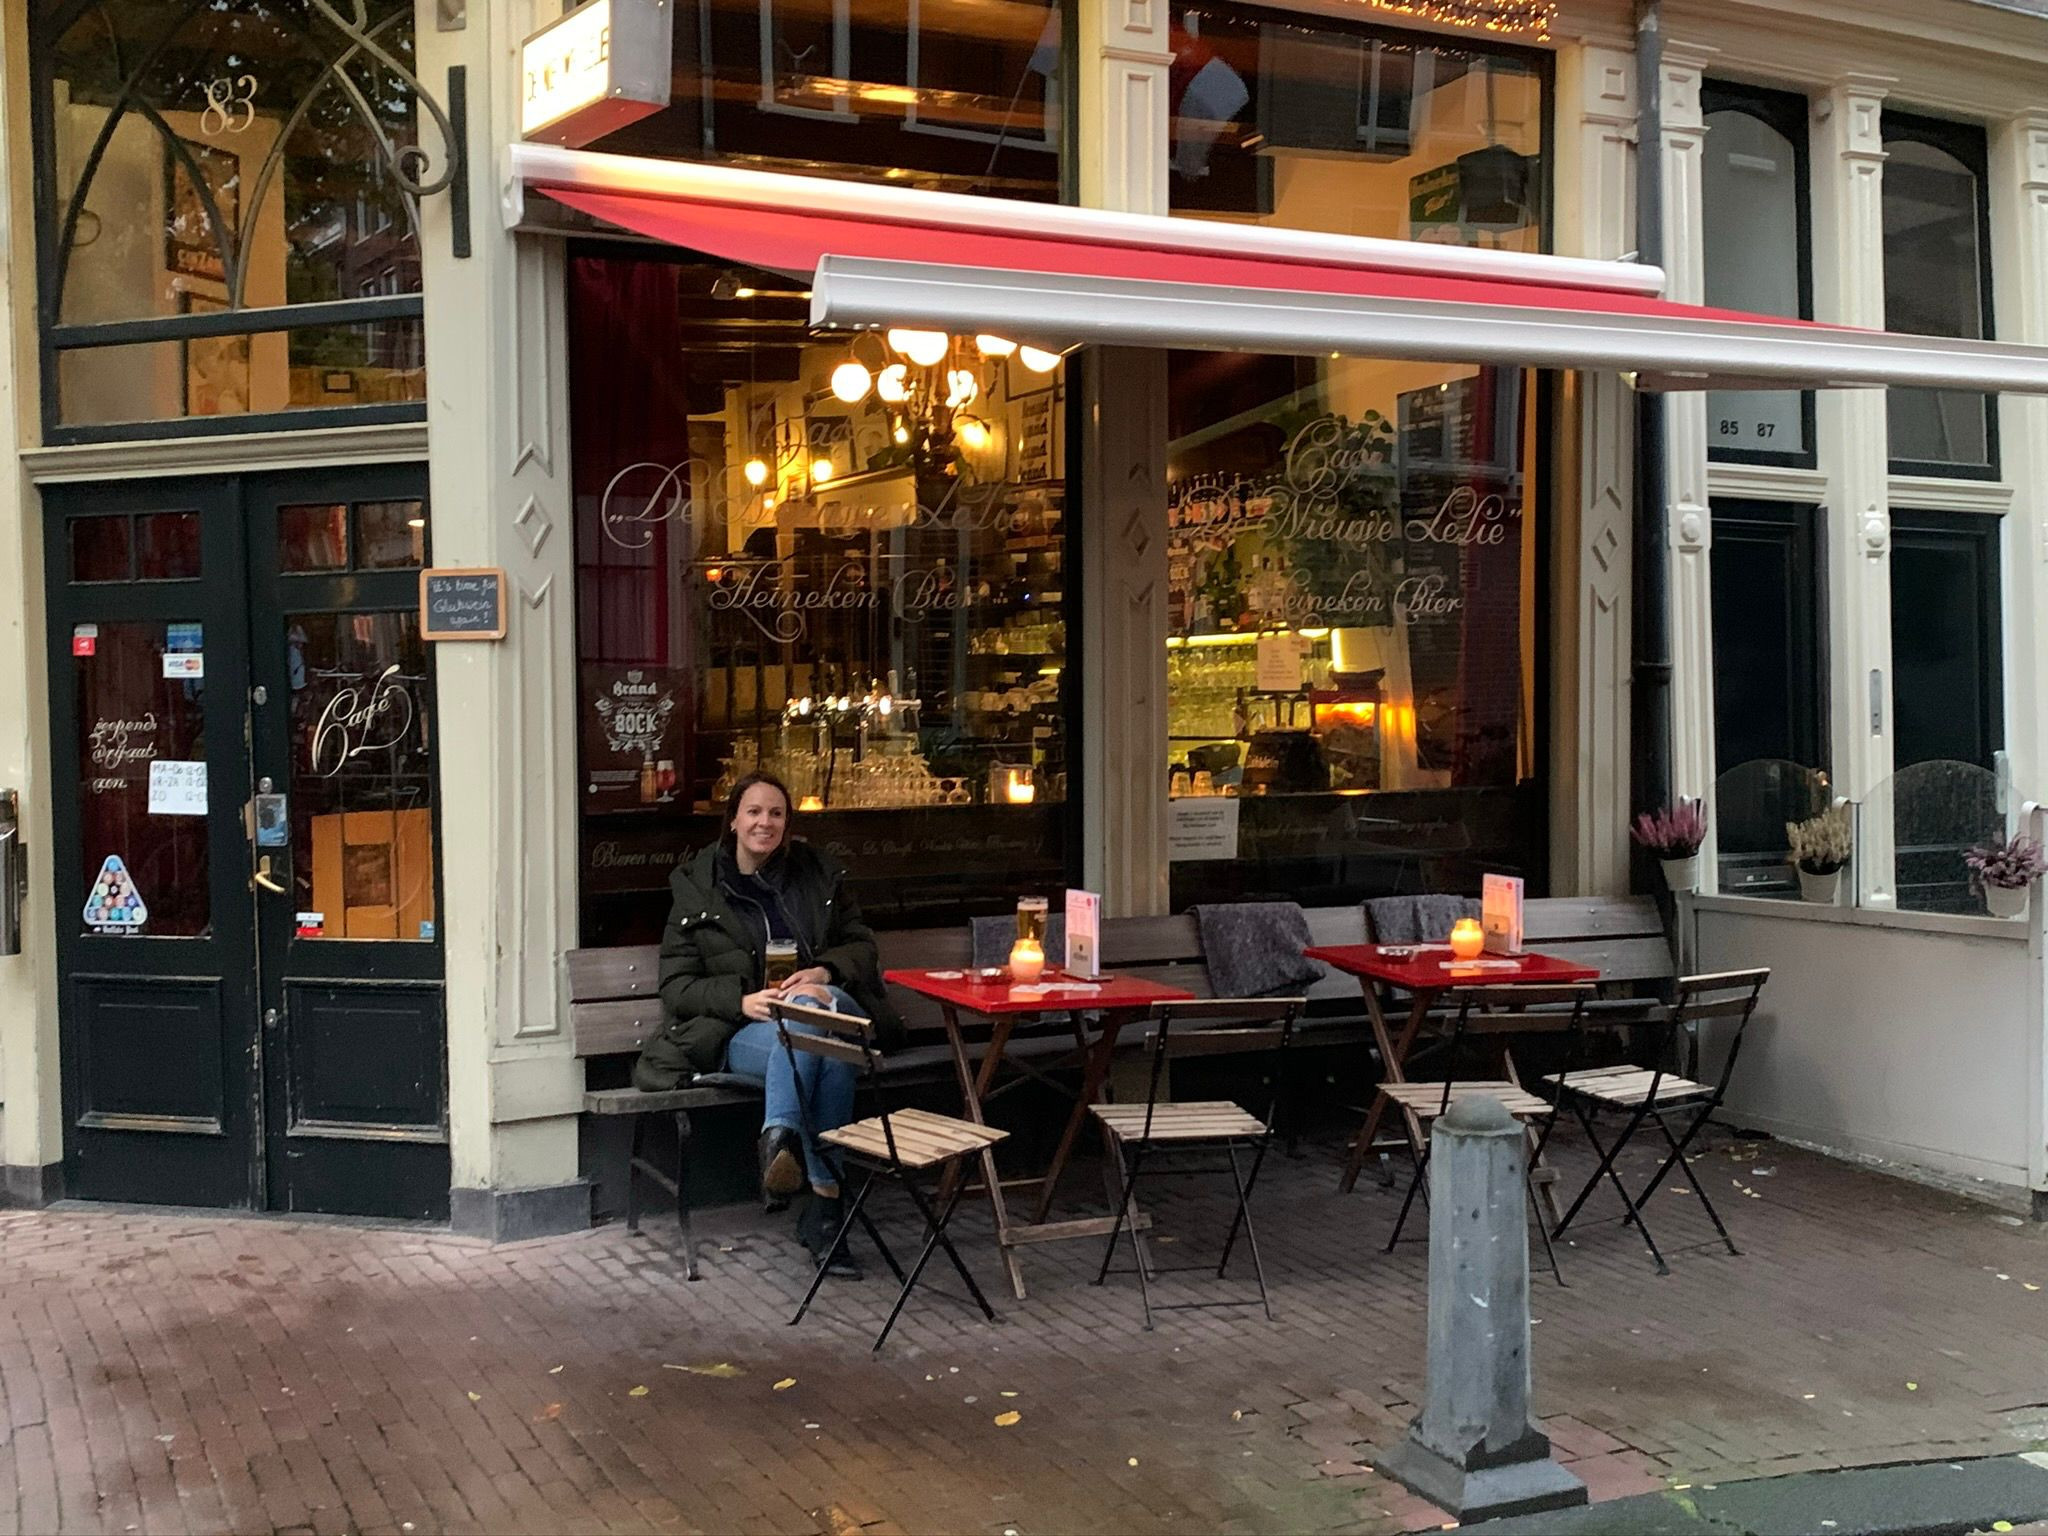 woman at cafe in amsterdam